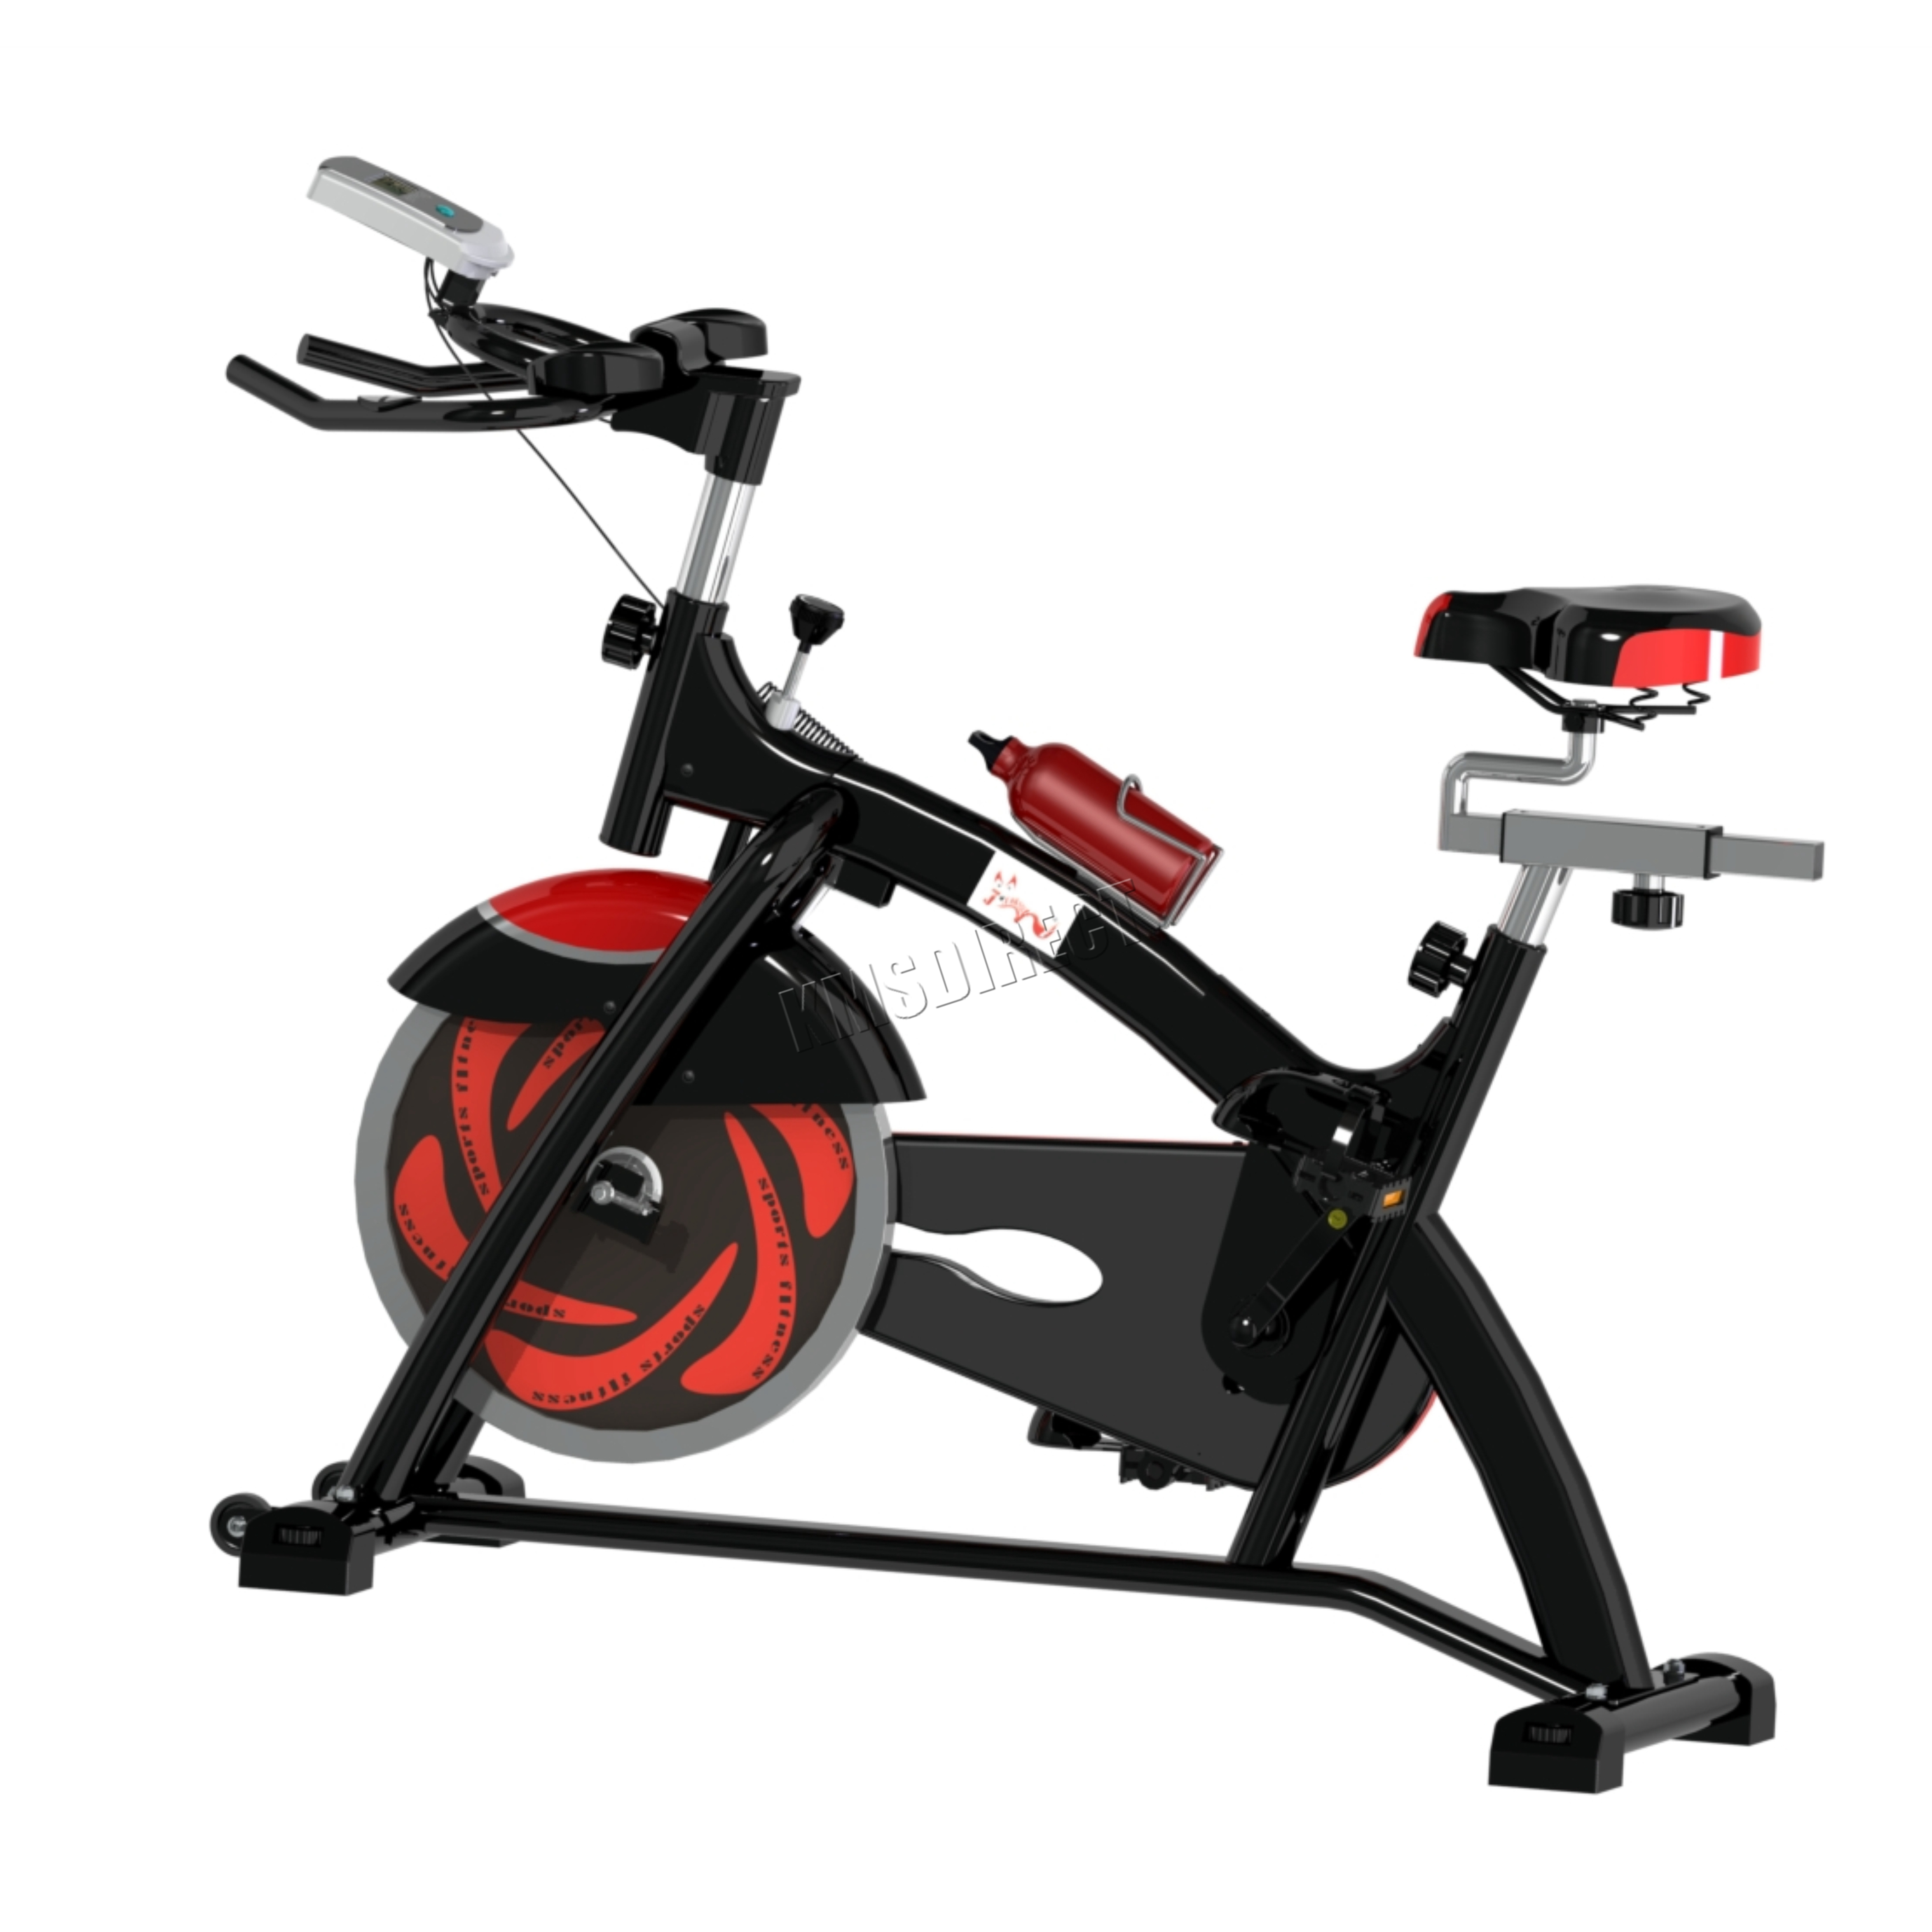 Exercise Bike Next Day Delivery: FoxHunter Fitness Exercise Bike Cycling Gym Indoor Workout